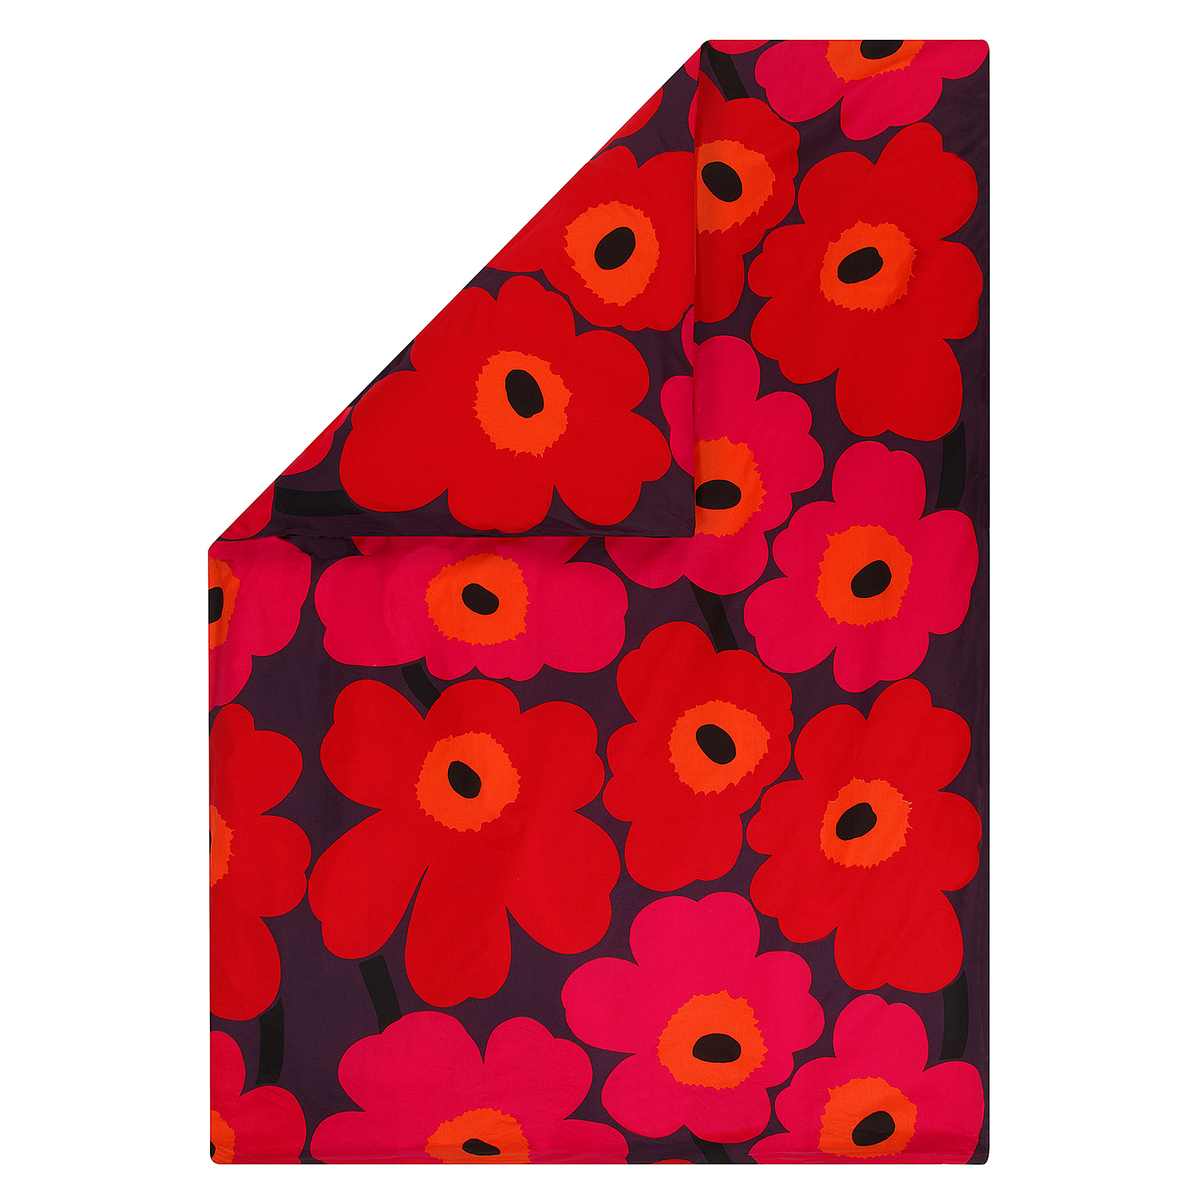 Marimekko Unikko Duvet Cover Red Orange Plum Finnish